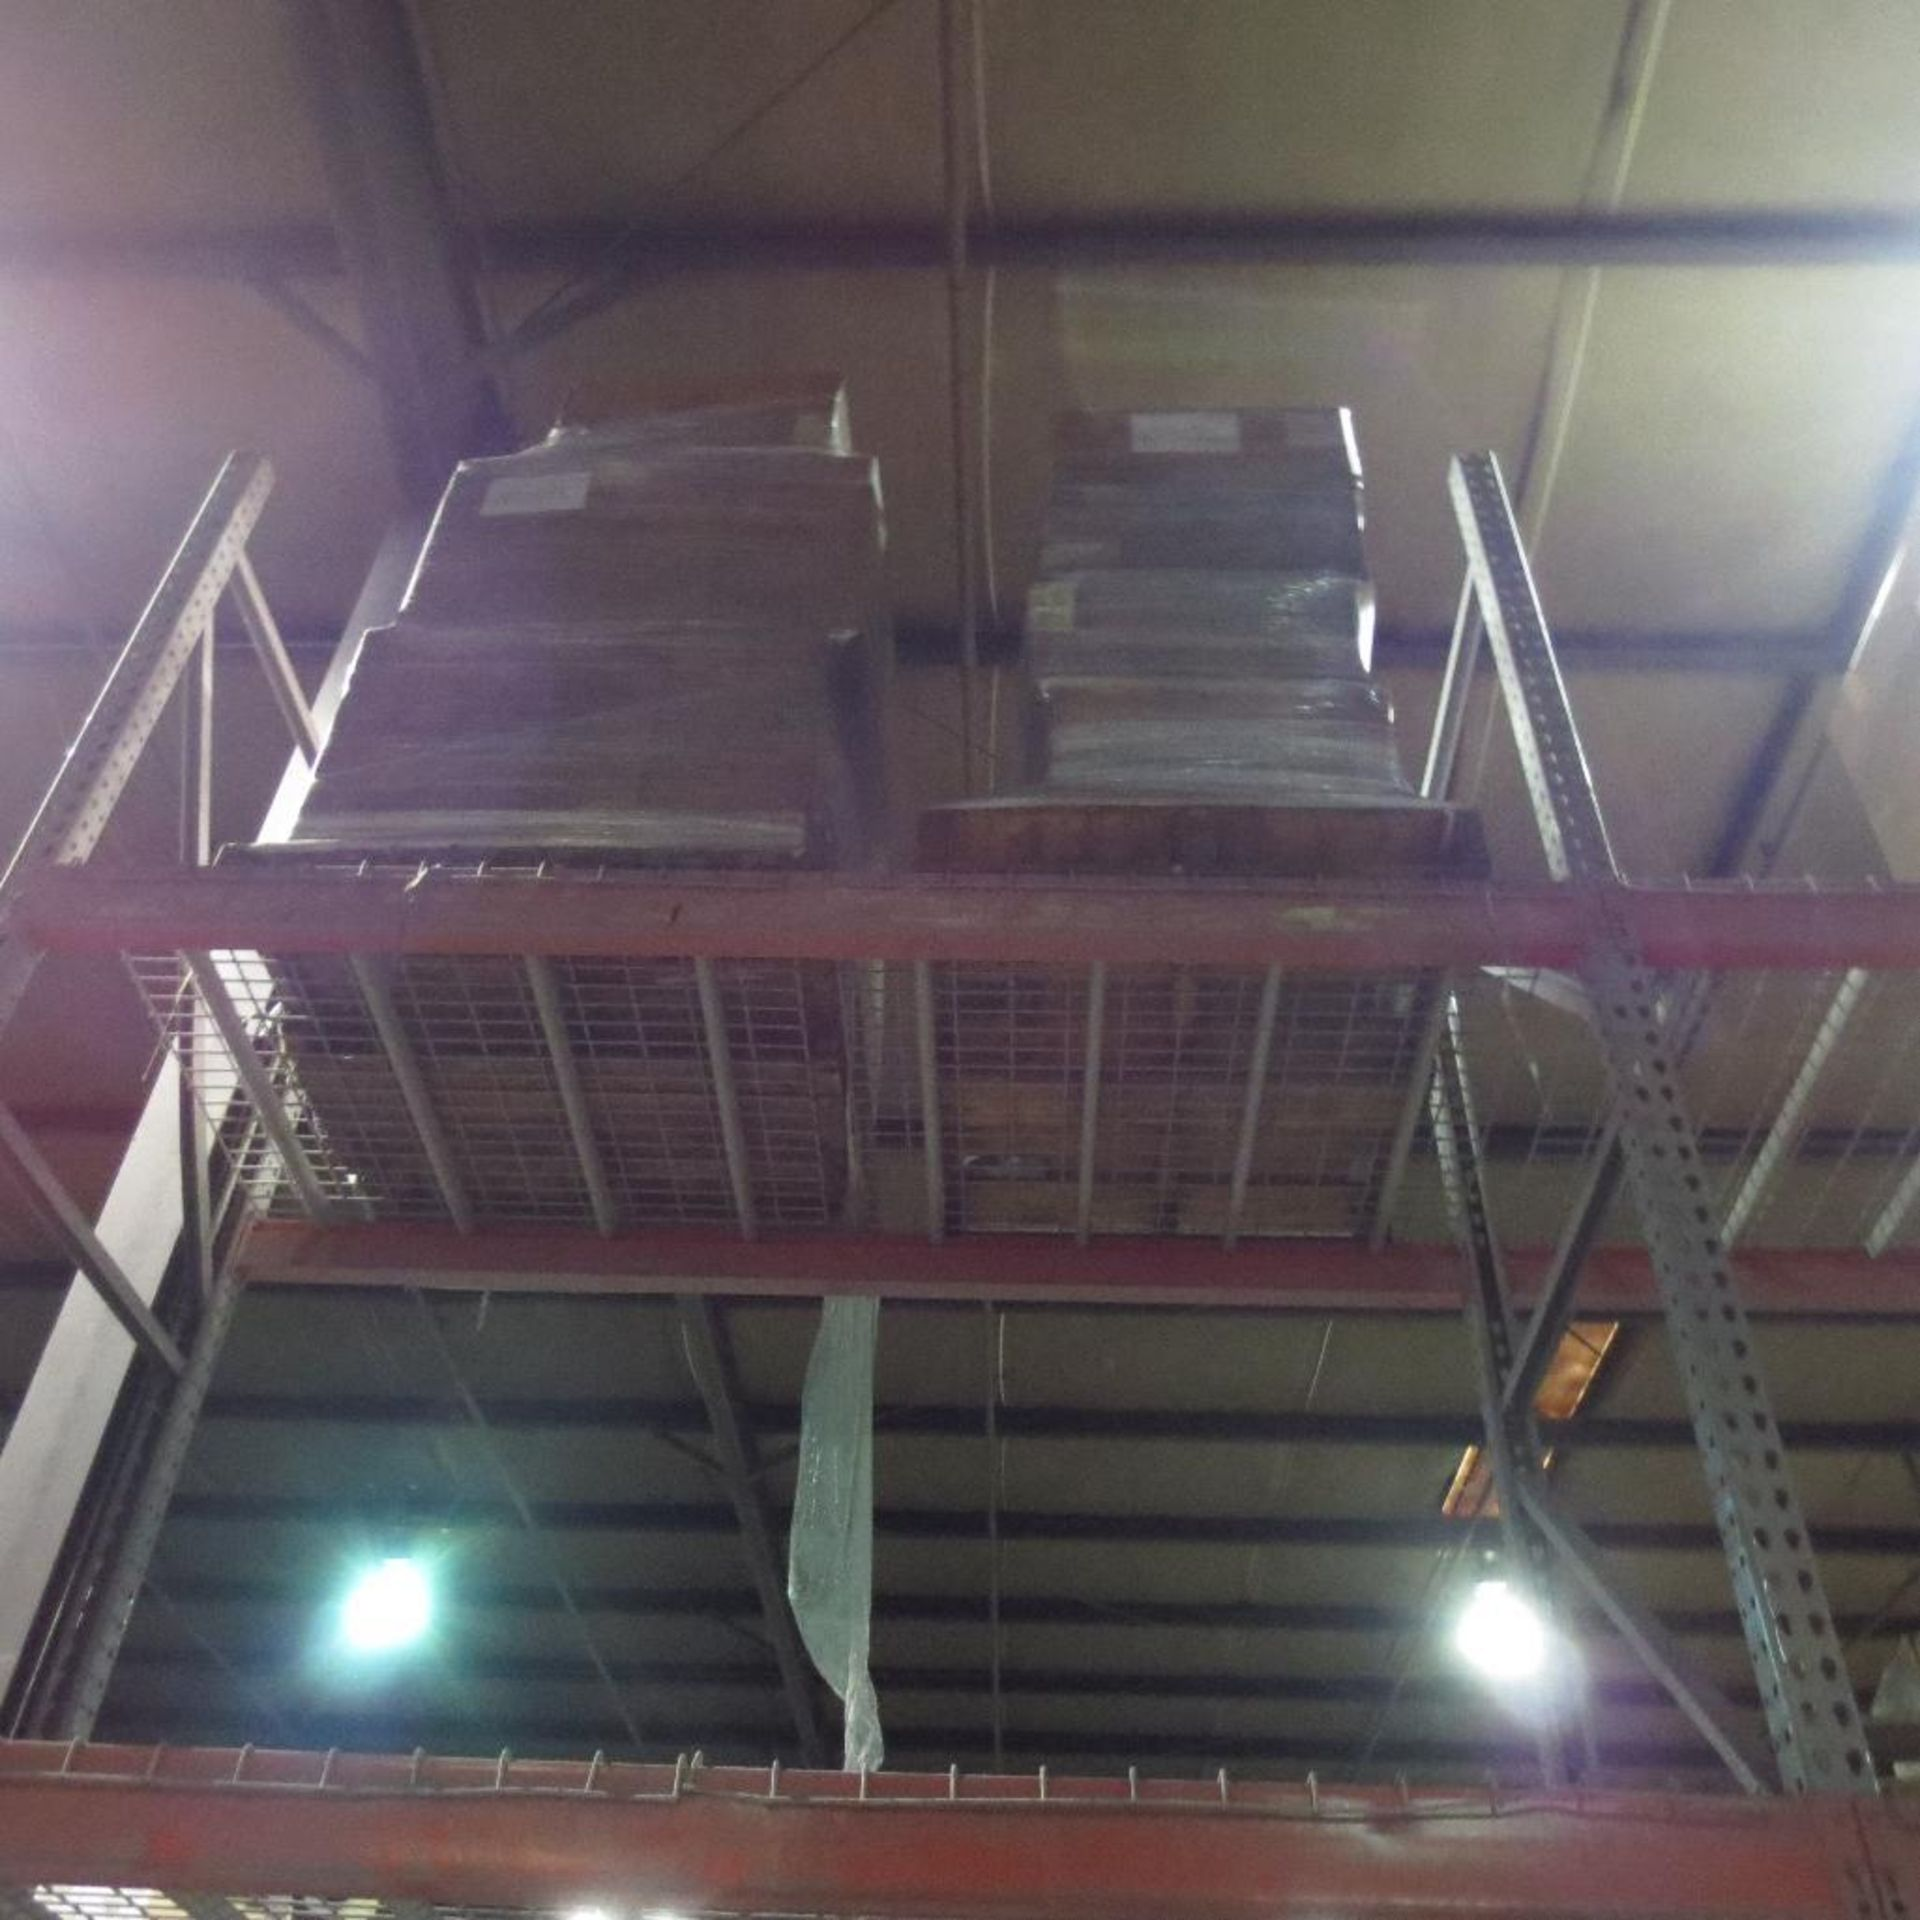 Lot 28 - Items on pallet racking